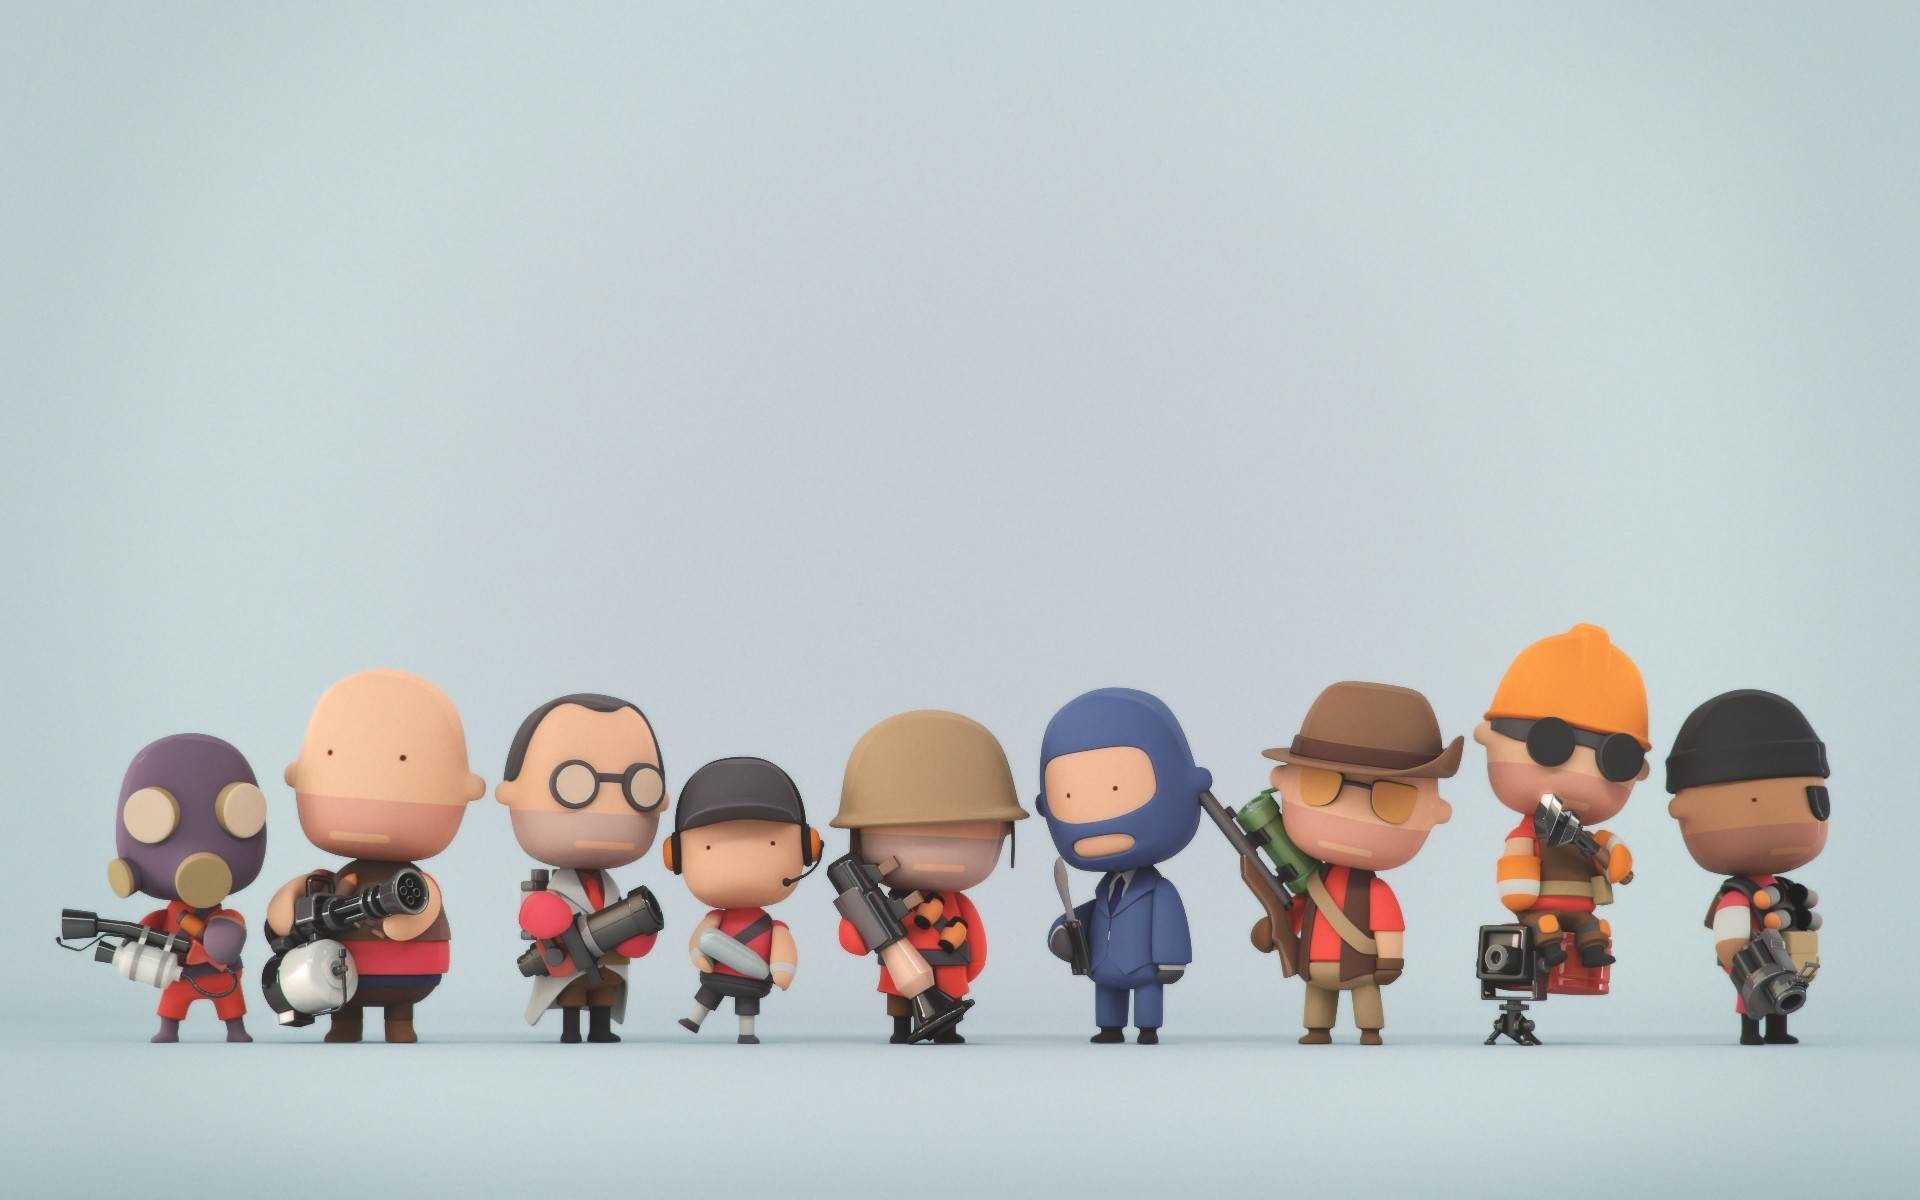 1920x1200 Tf2 Engineer Wallpaper - Viewing Gallery